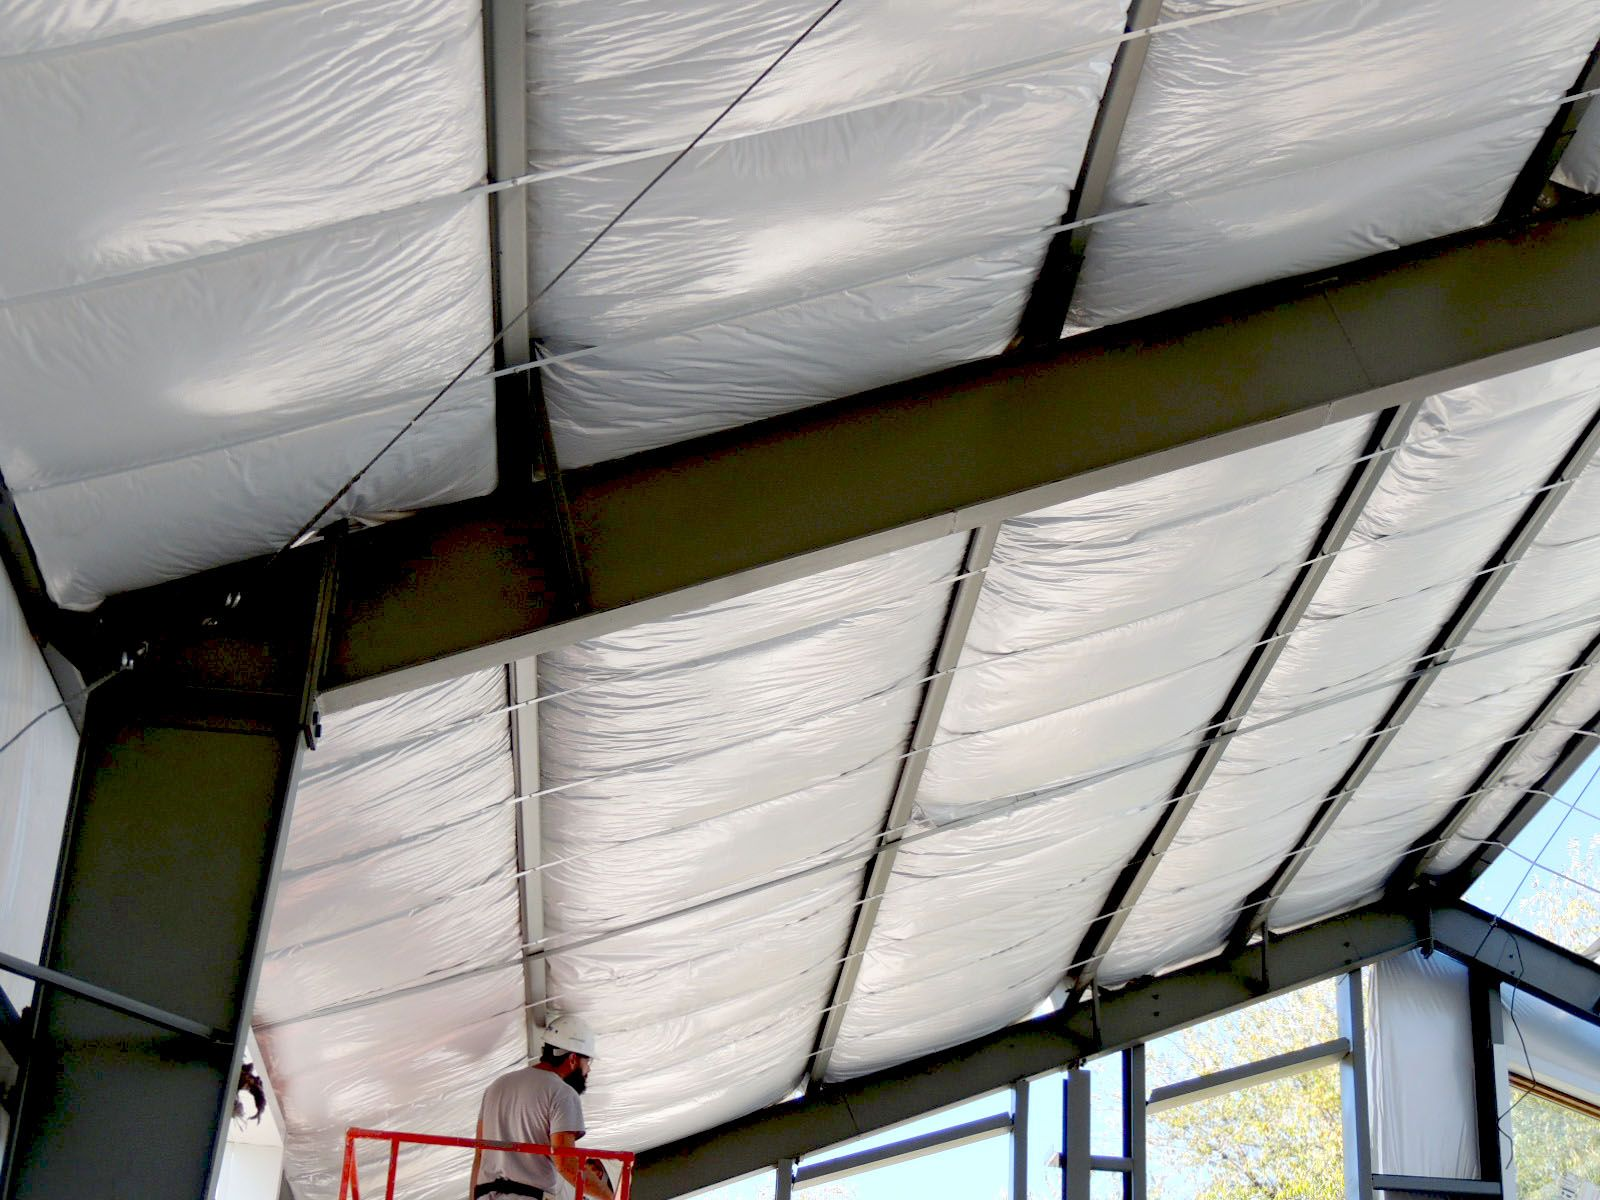 How to install insulation insulation